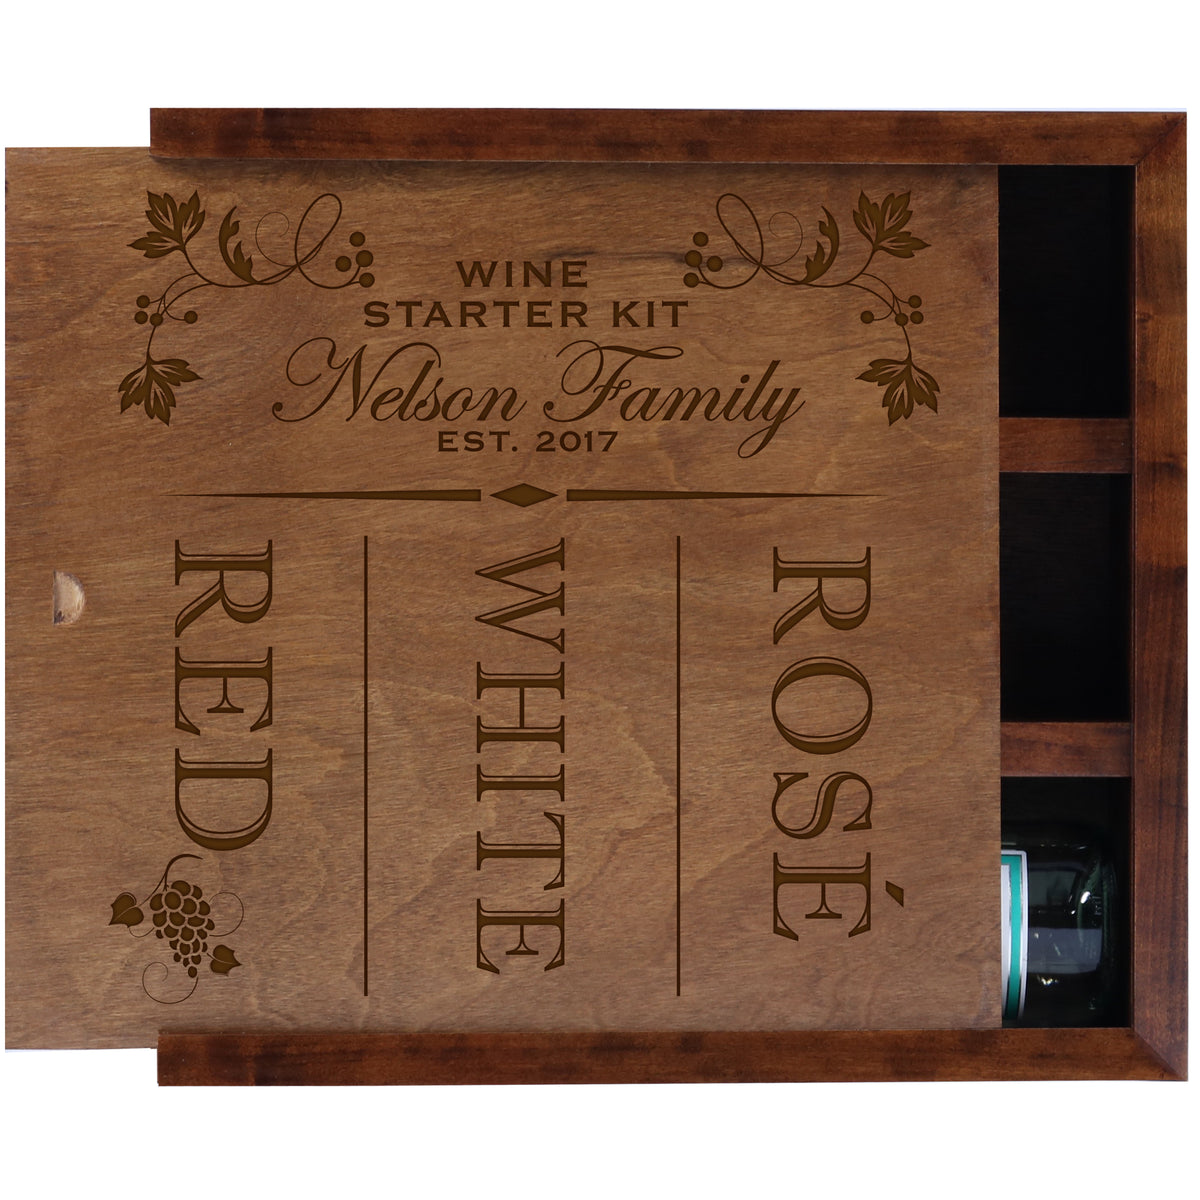 Decoration gift for parents mother father day home bar winery pantry handmade Display alcohol decorative mom mothers dad grandpa birthday best man men friend Christmas best friend celebrations custom engraved boyfriend girlfriend fiance